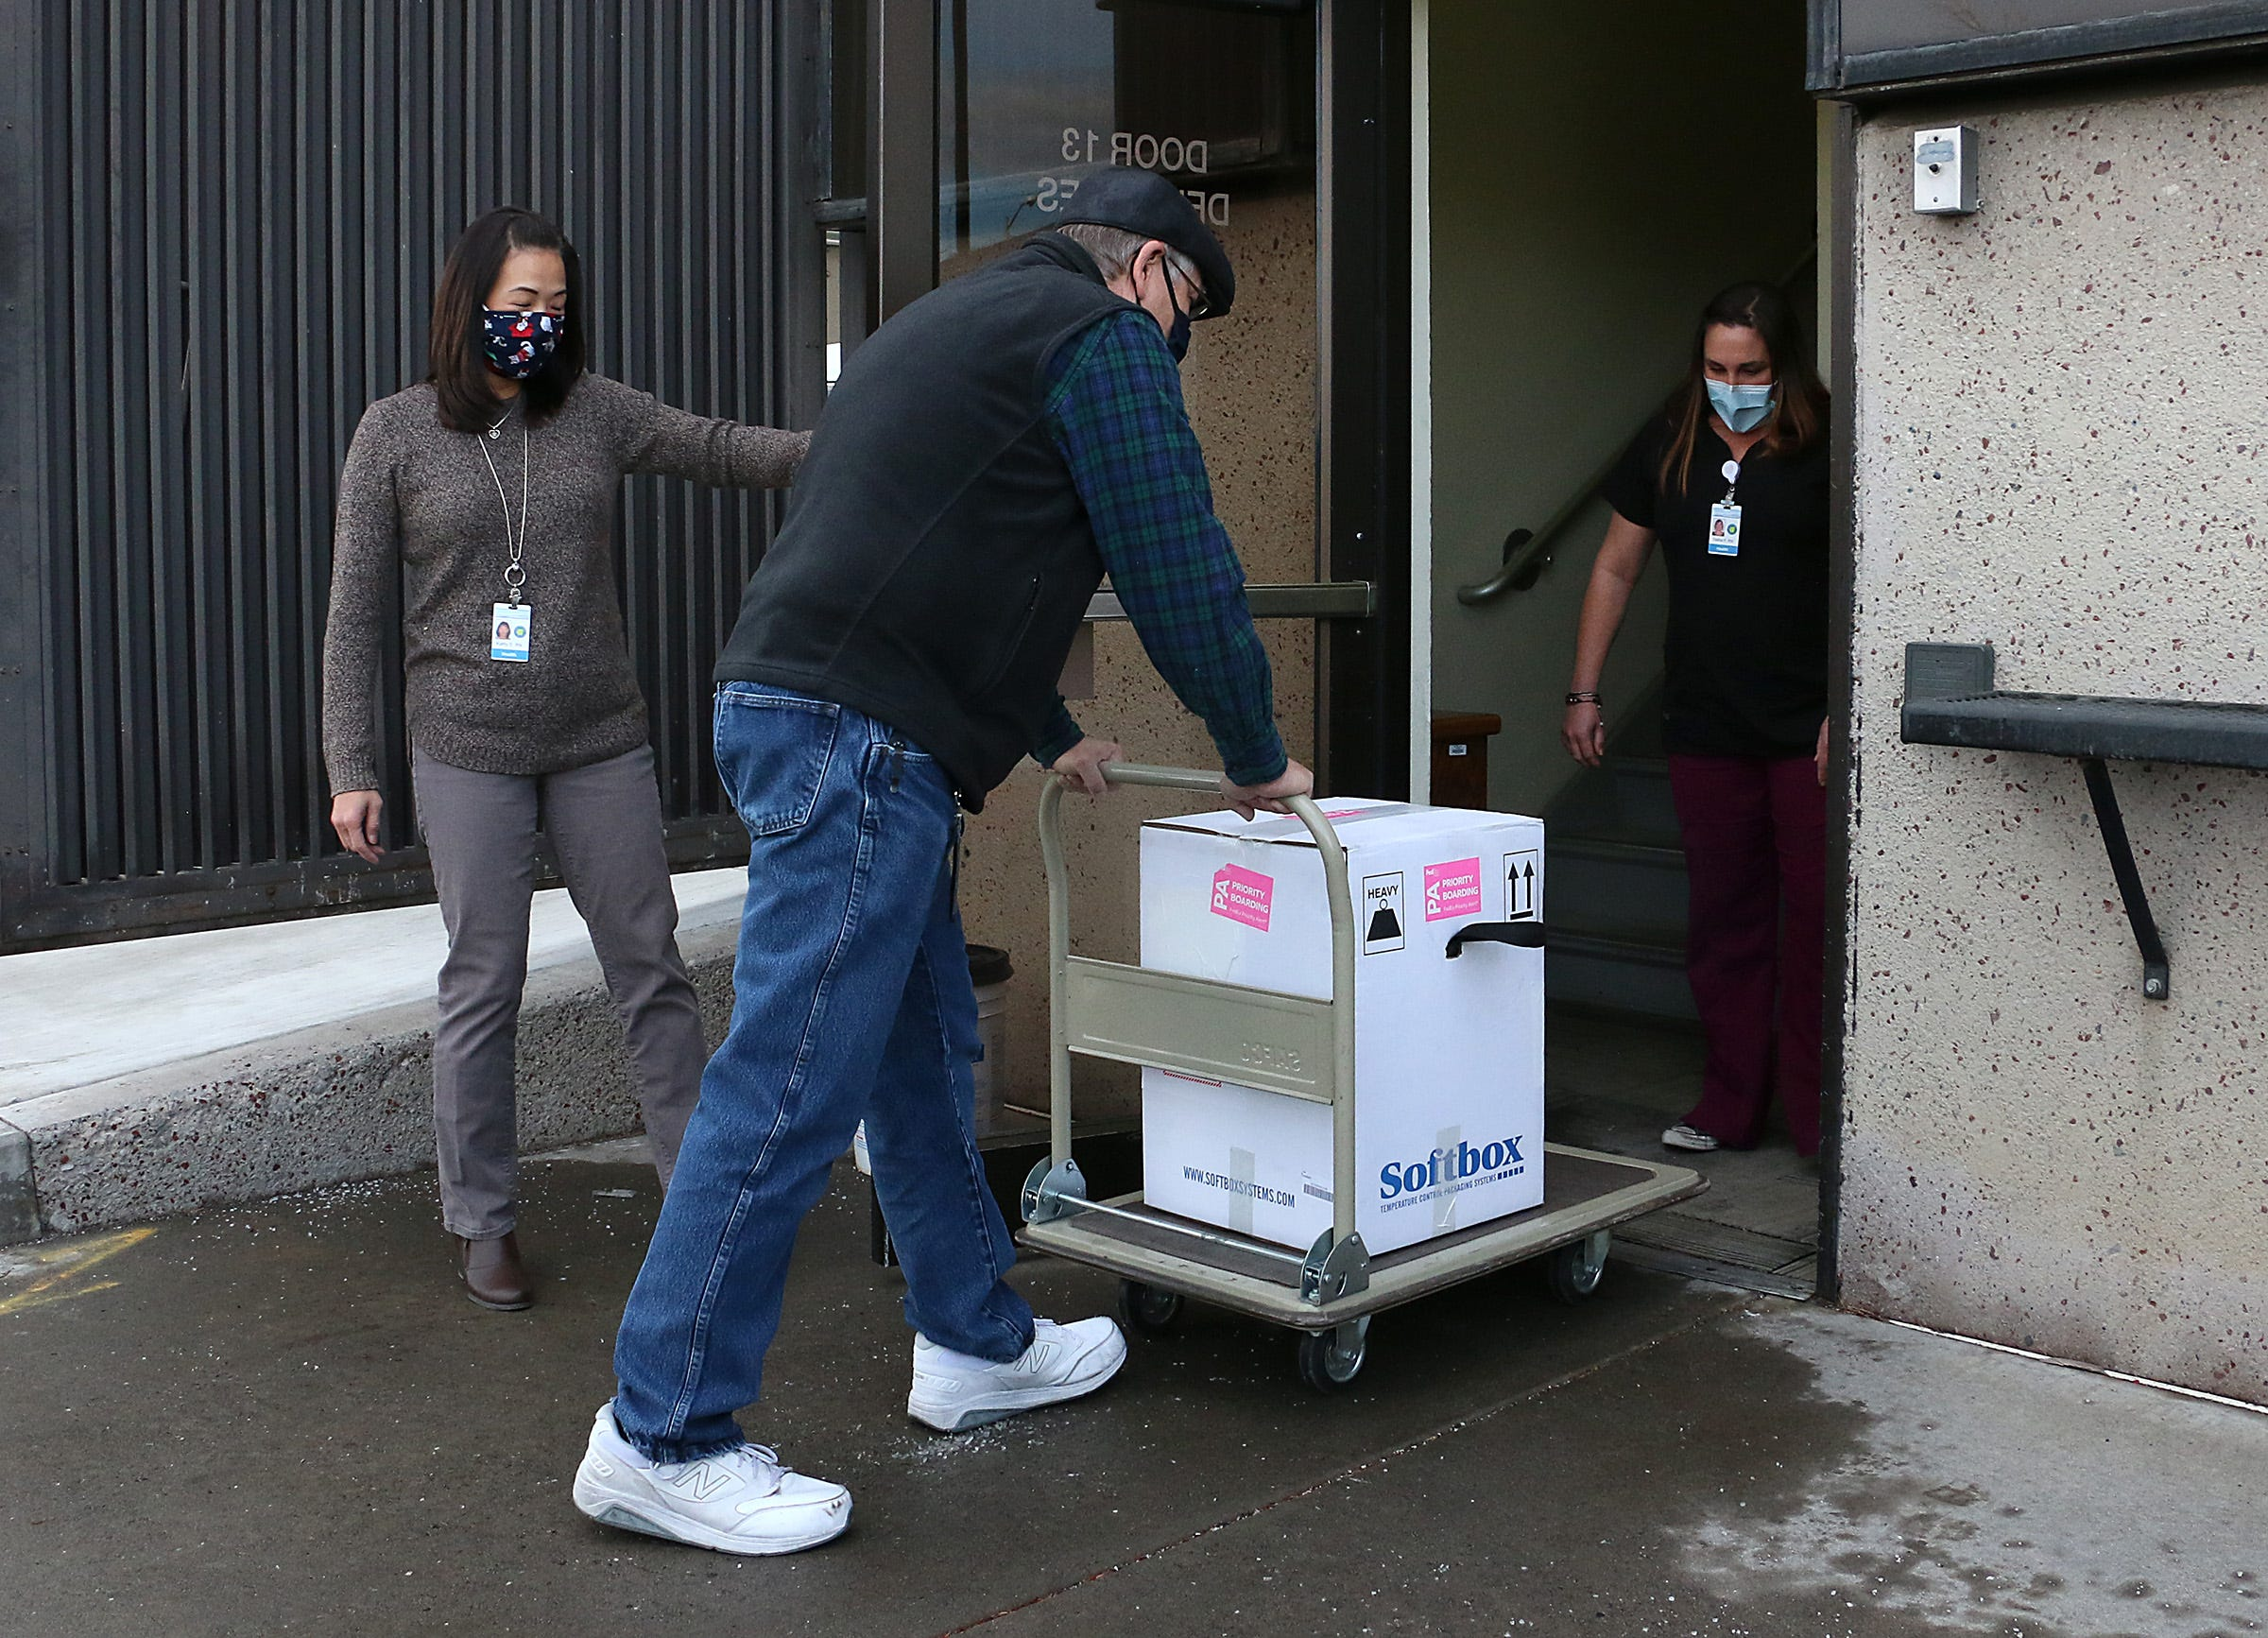 Washoe County Health District employee Michael White brings the newly arrived Covid vaccine into the county building in Reno on Dec. 15, 2020.